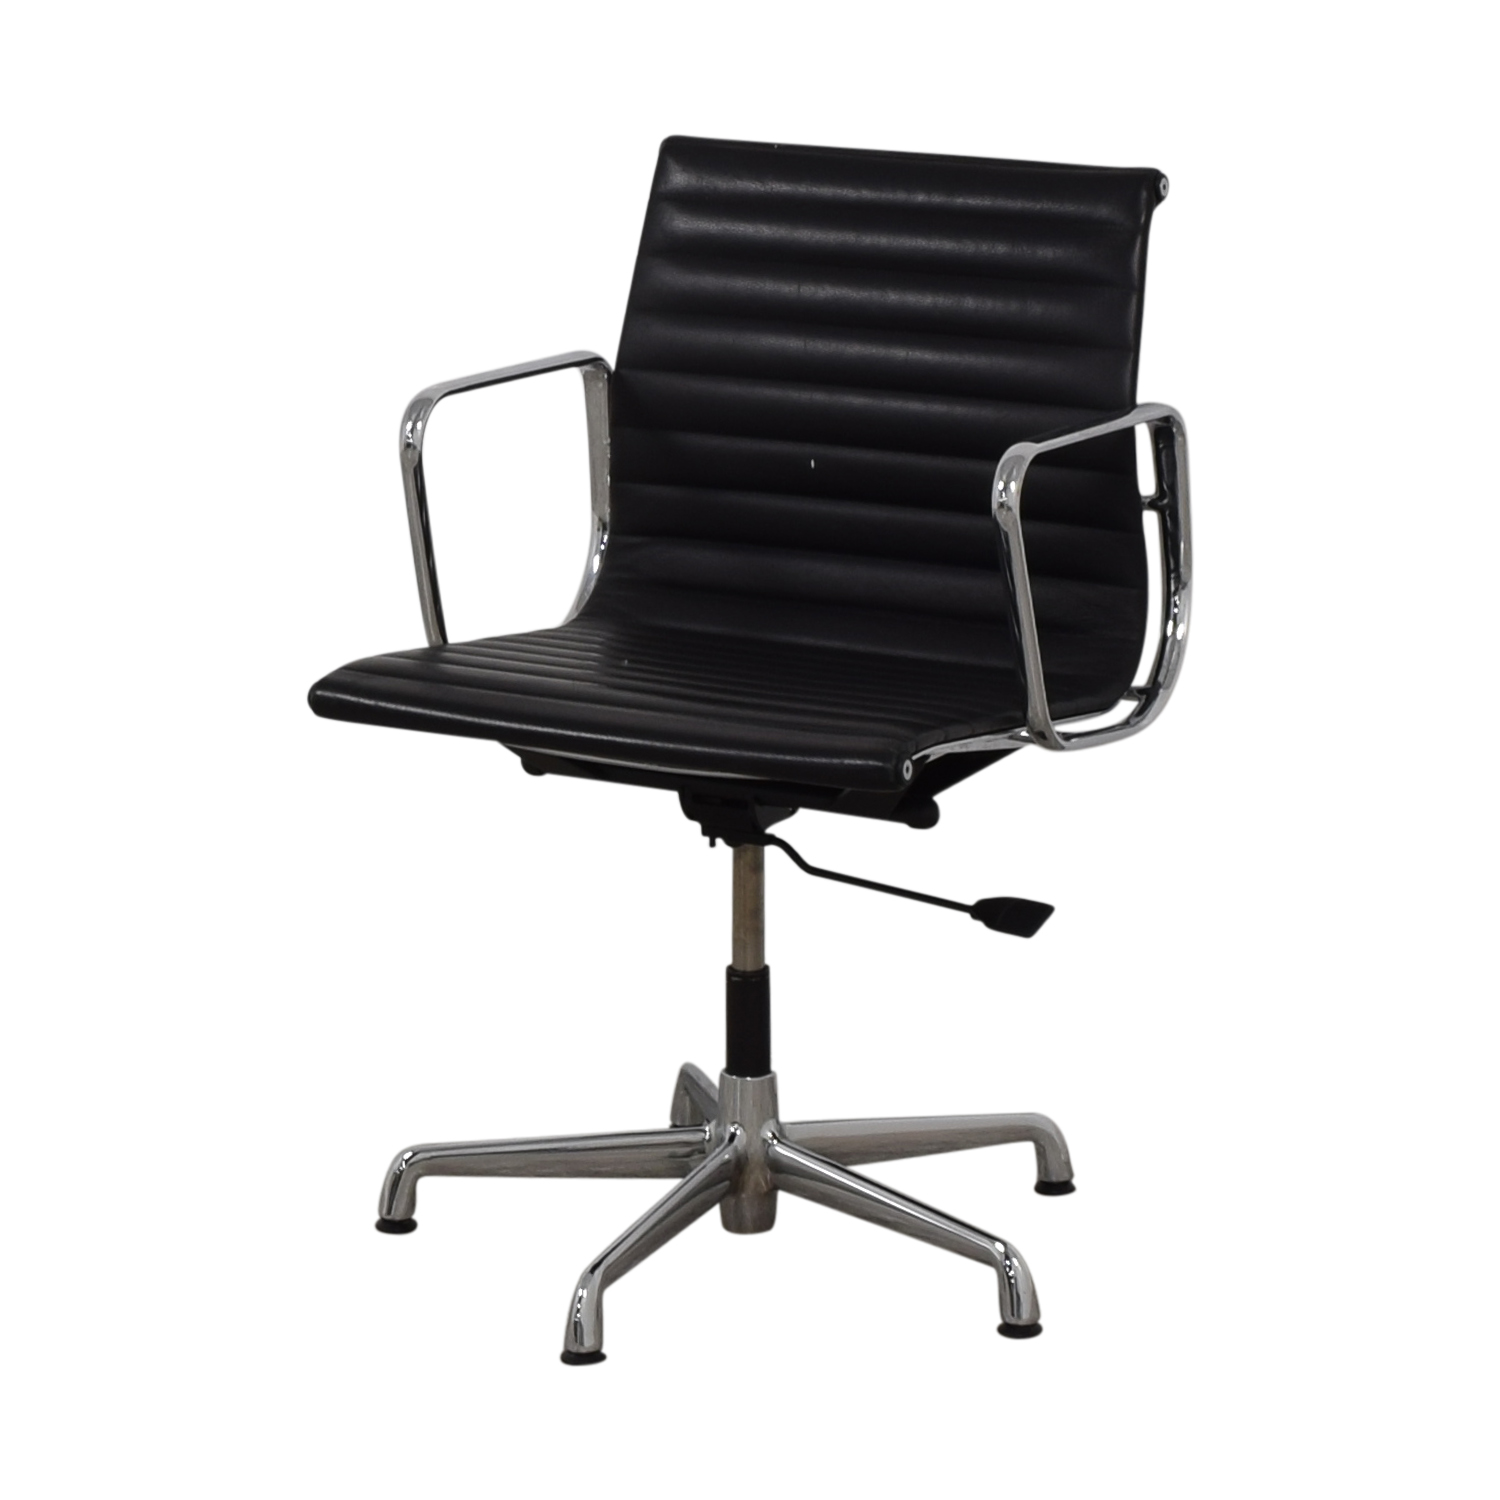 Herman Miller Herman Miller Eames Aluminum Black Leather Office Chair